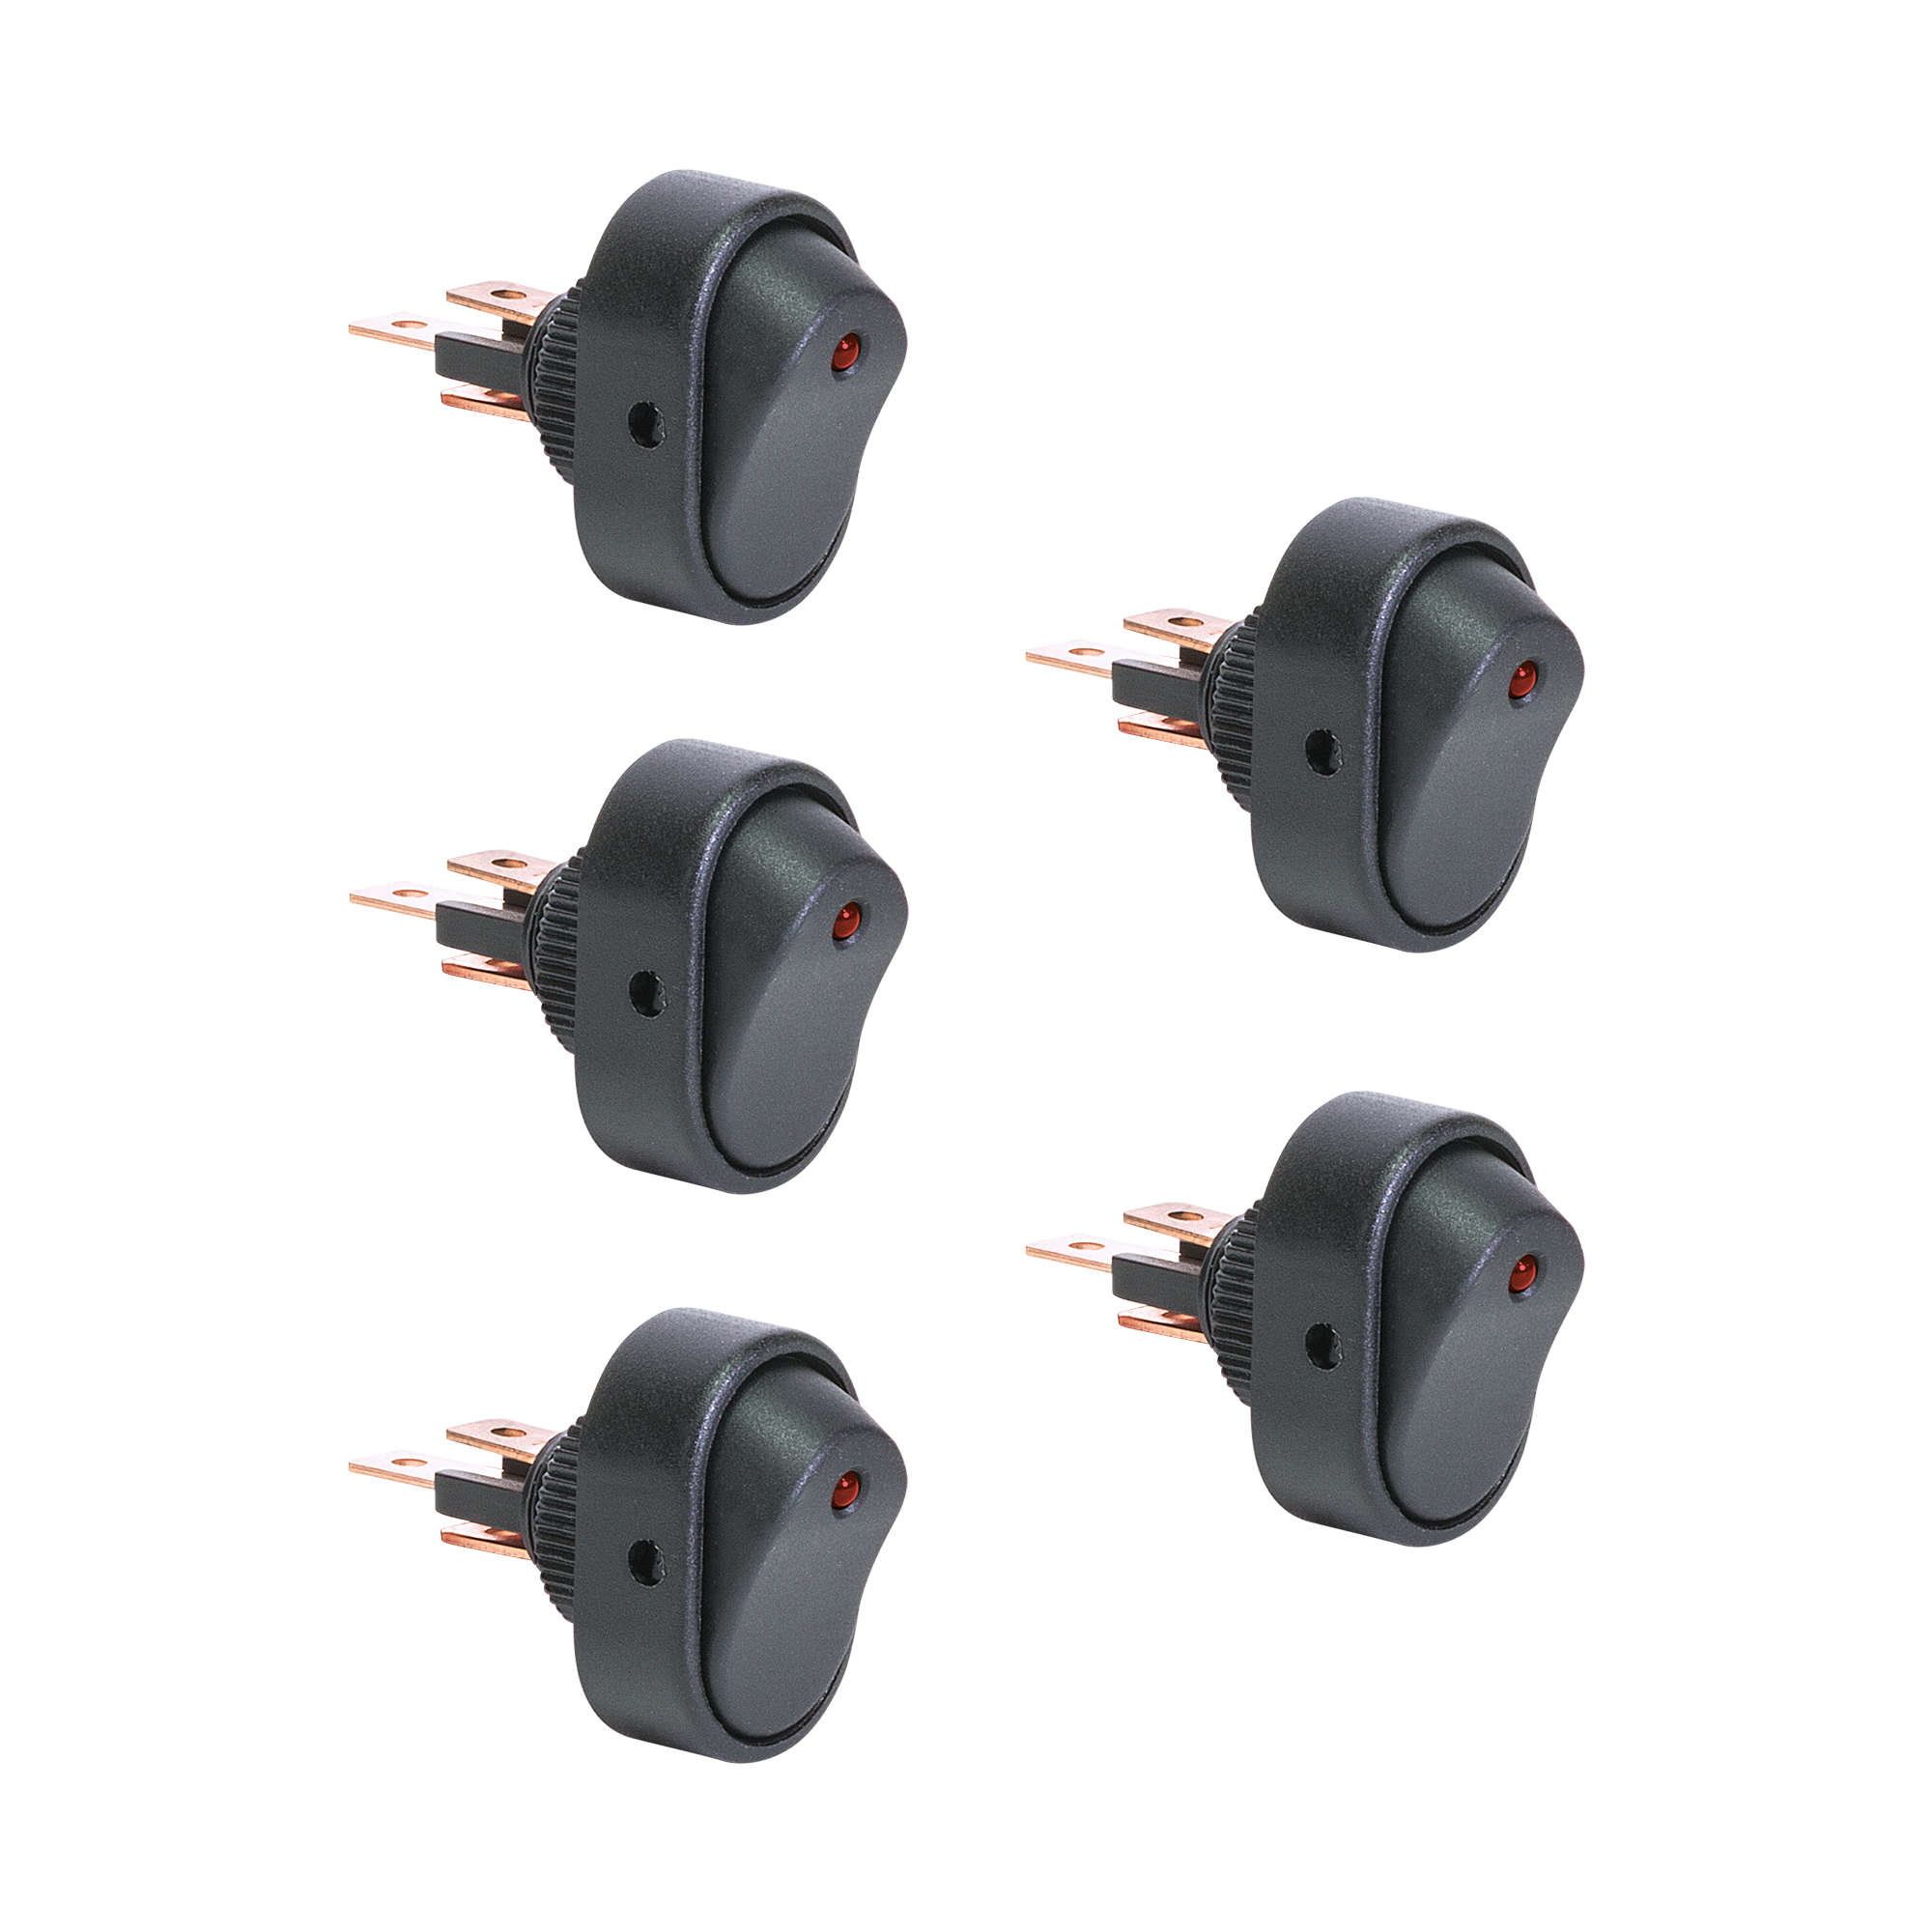 OLS 12V DC 30A 3-Pin SPST LED On/Off Rocker Switch - Red - Pack of 5